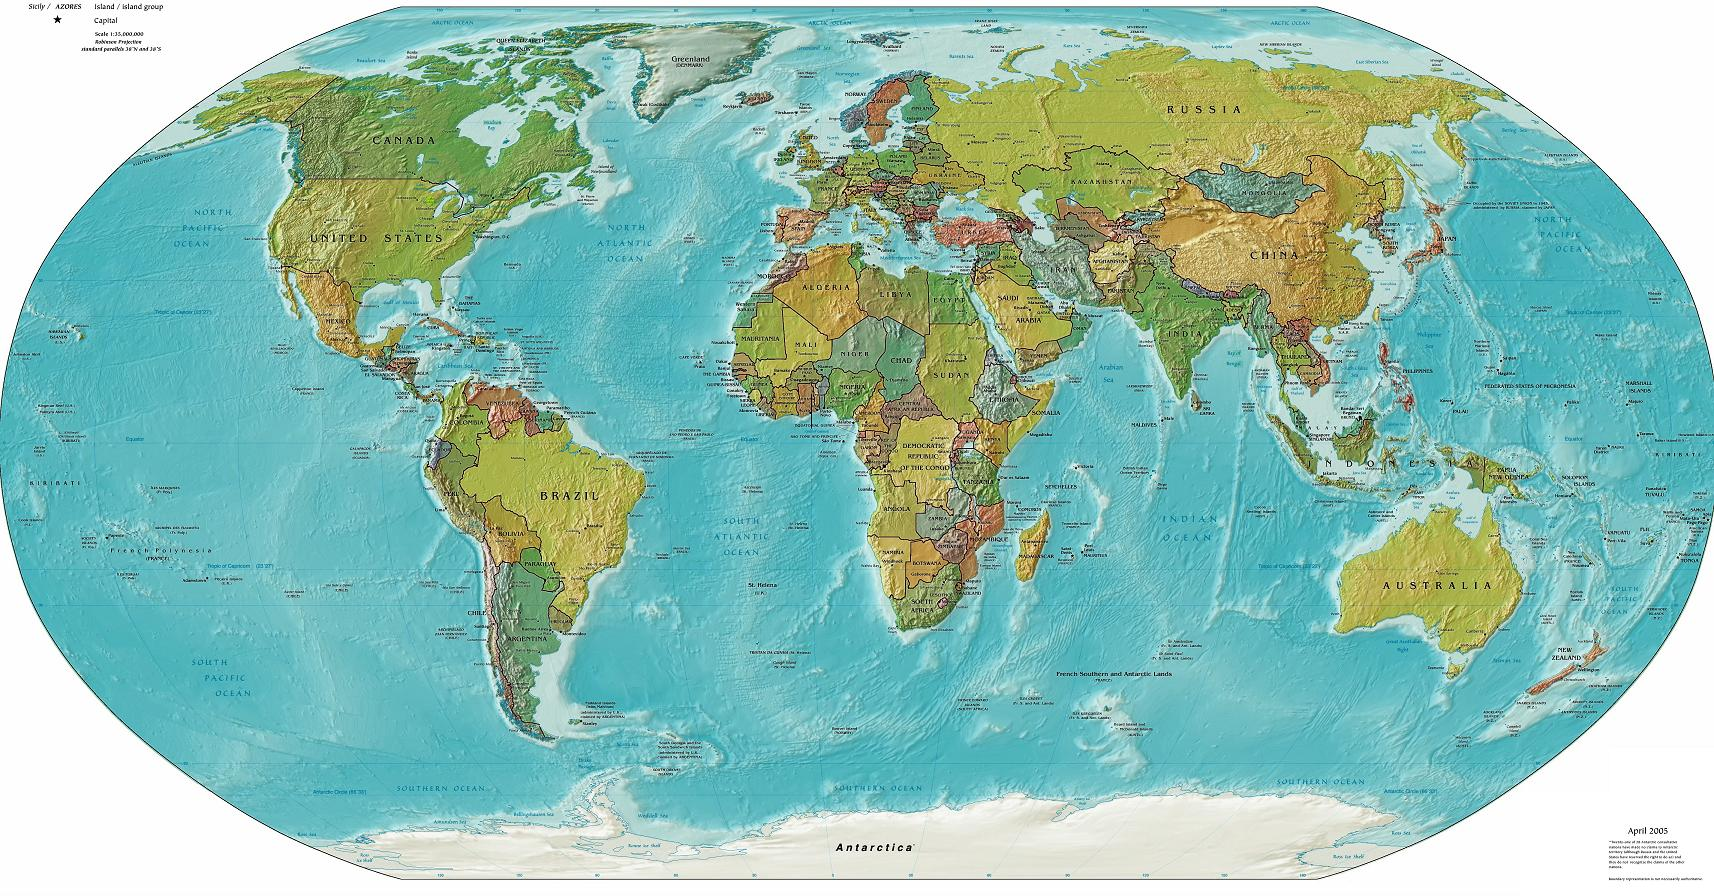 Map Of Earth. Map of the World. Printable. (mapofearth) - Ygraph.com MAP OF EARTH